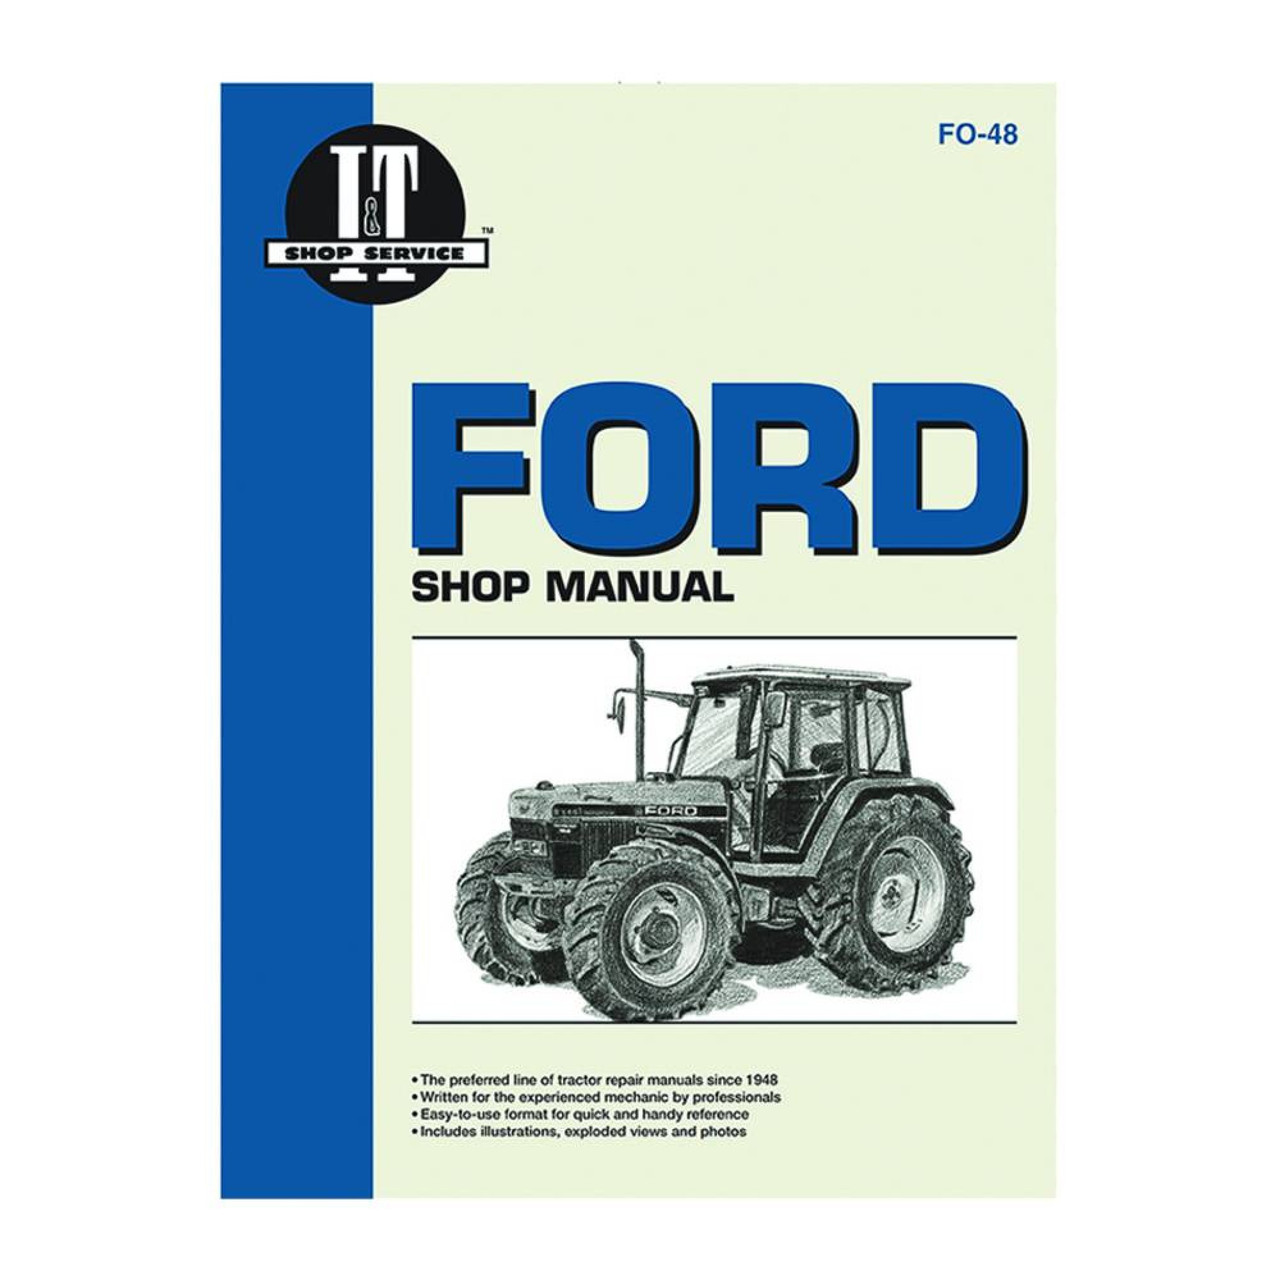 small resolution of ford 8240 wiring diagram wiring diagram view ford 8240 wiring diagram